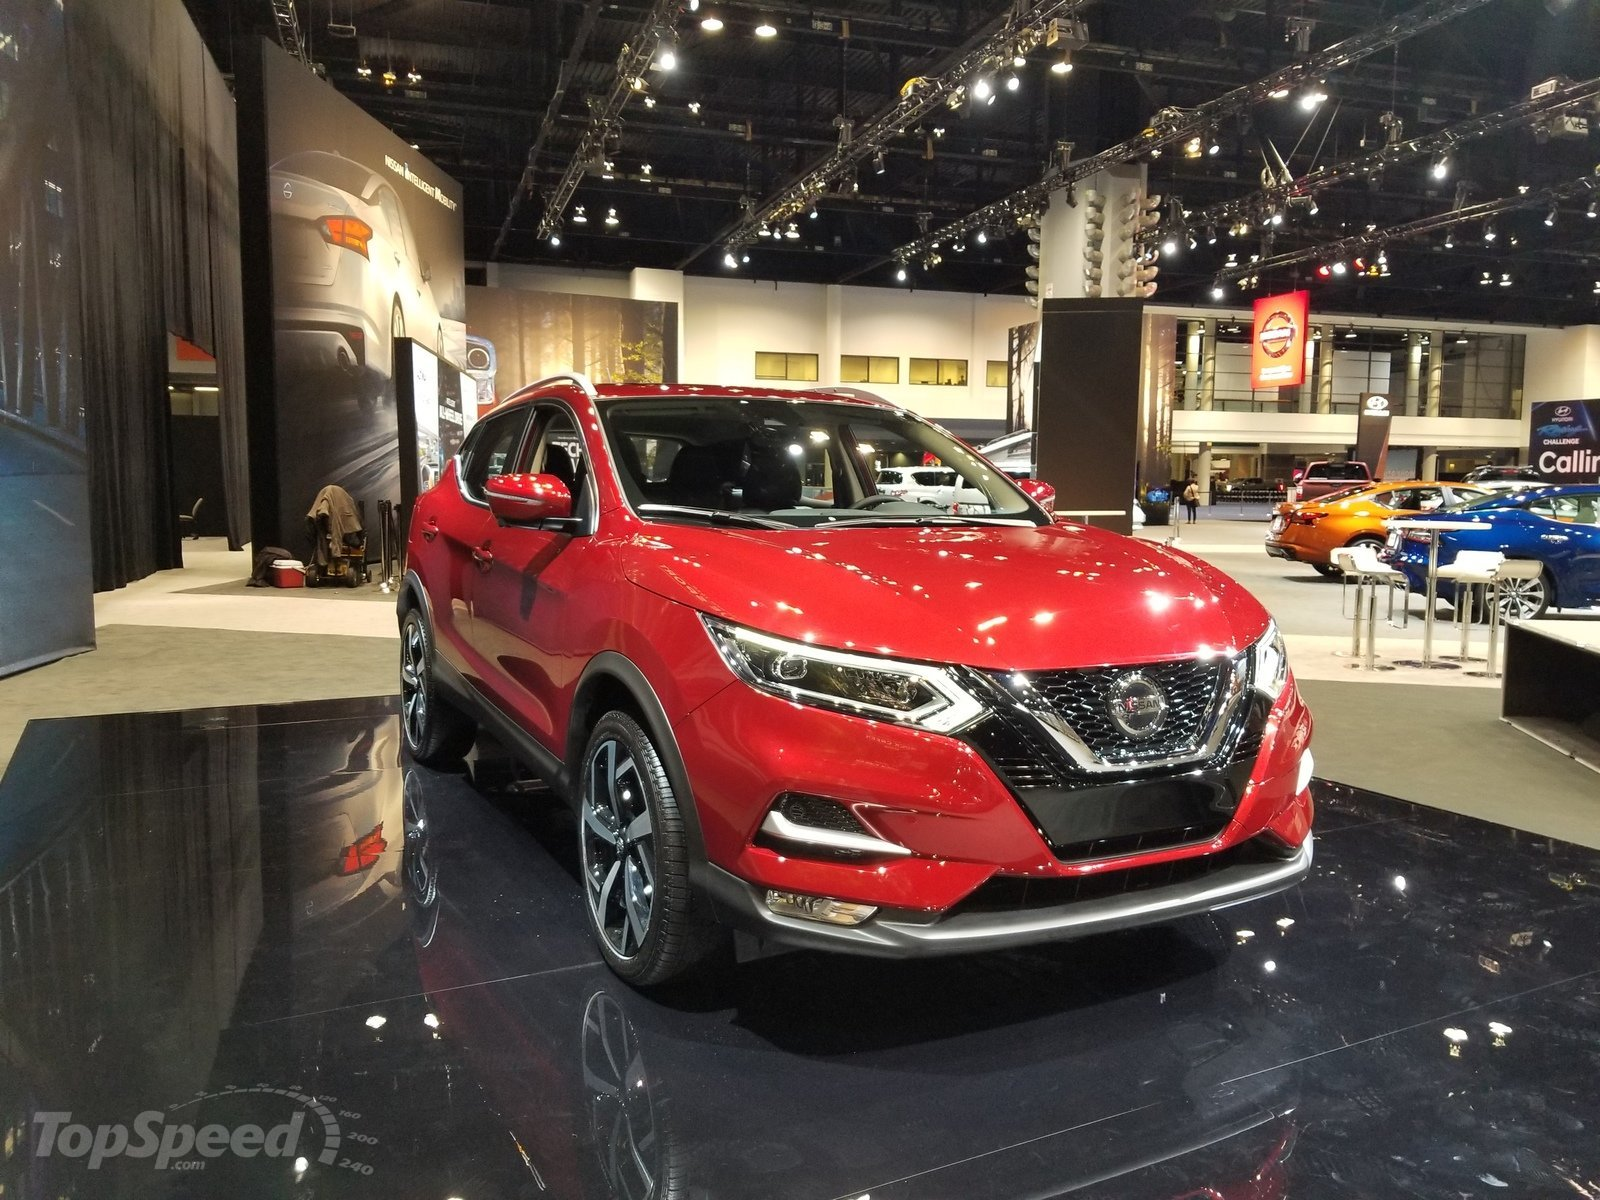 Nissan Rogue Suv >> The 2020 Nissan Rogue Sport Is Semi-Autonomous But Still Only With An N/A Engine | Top Speed